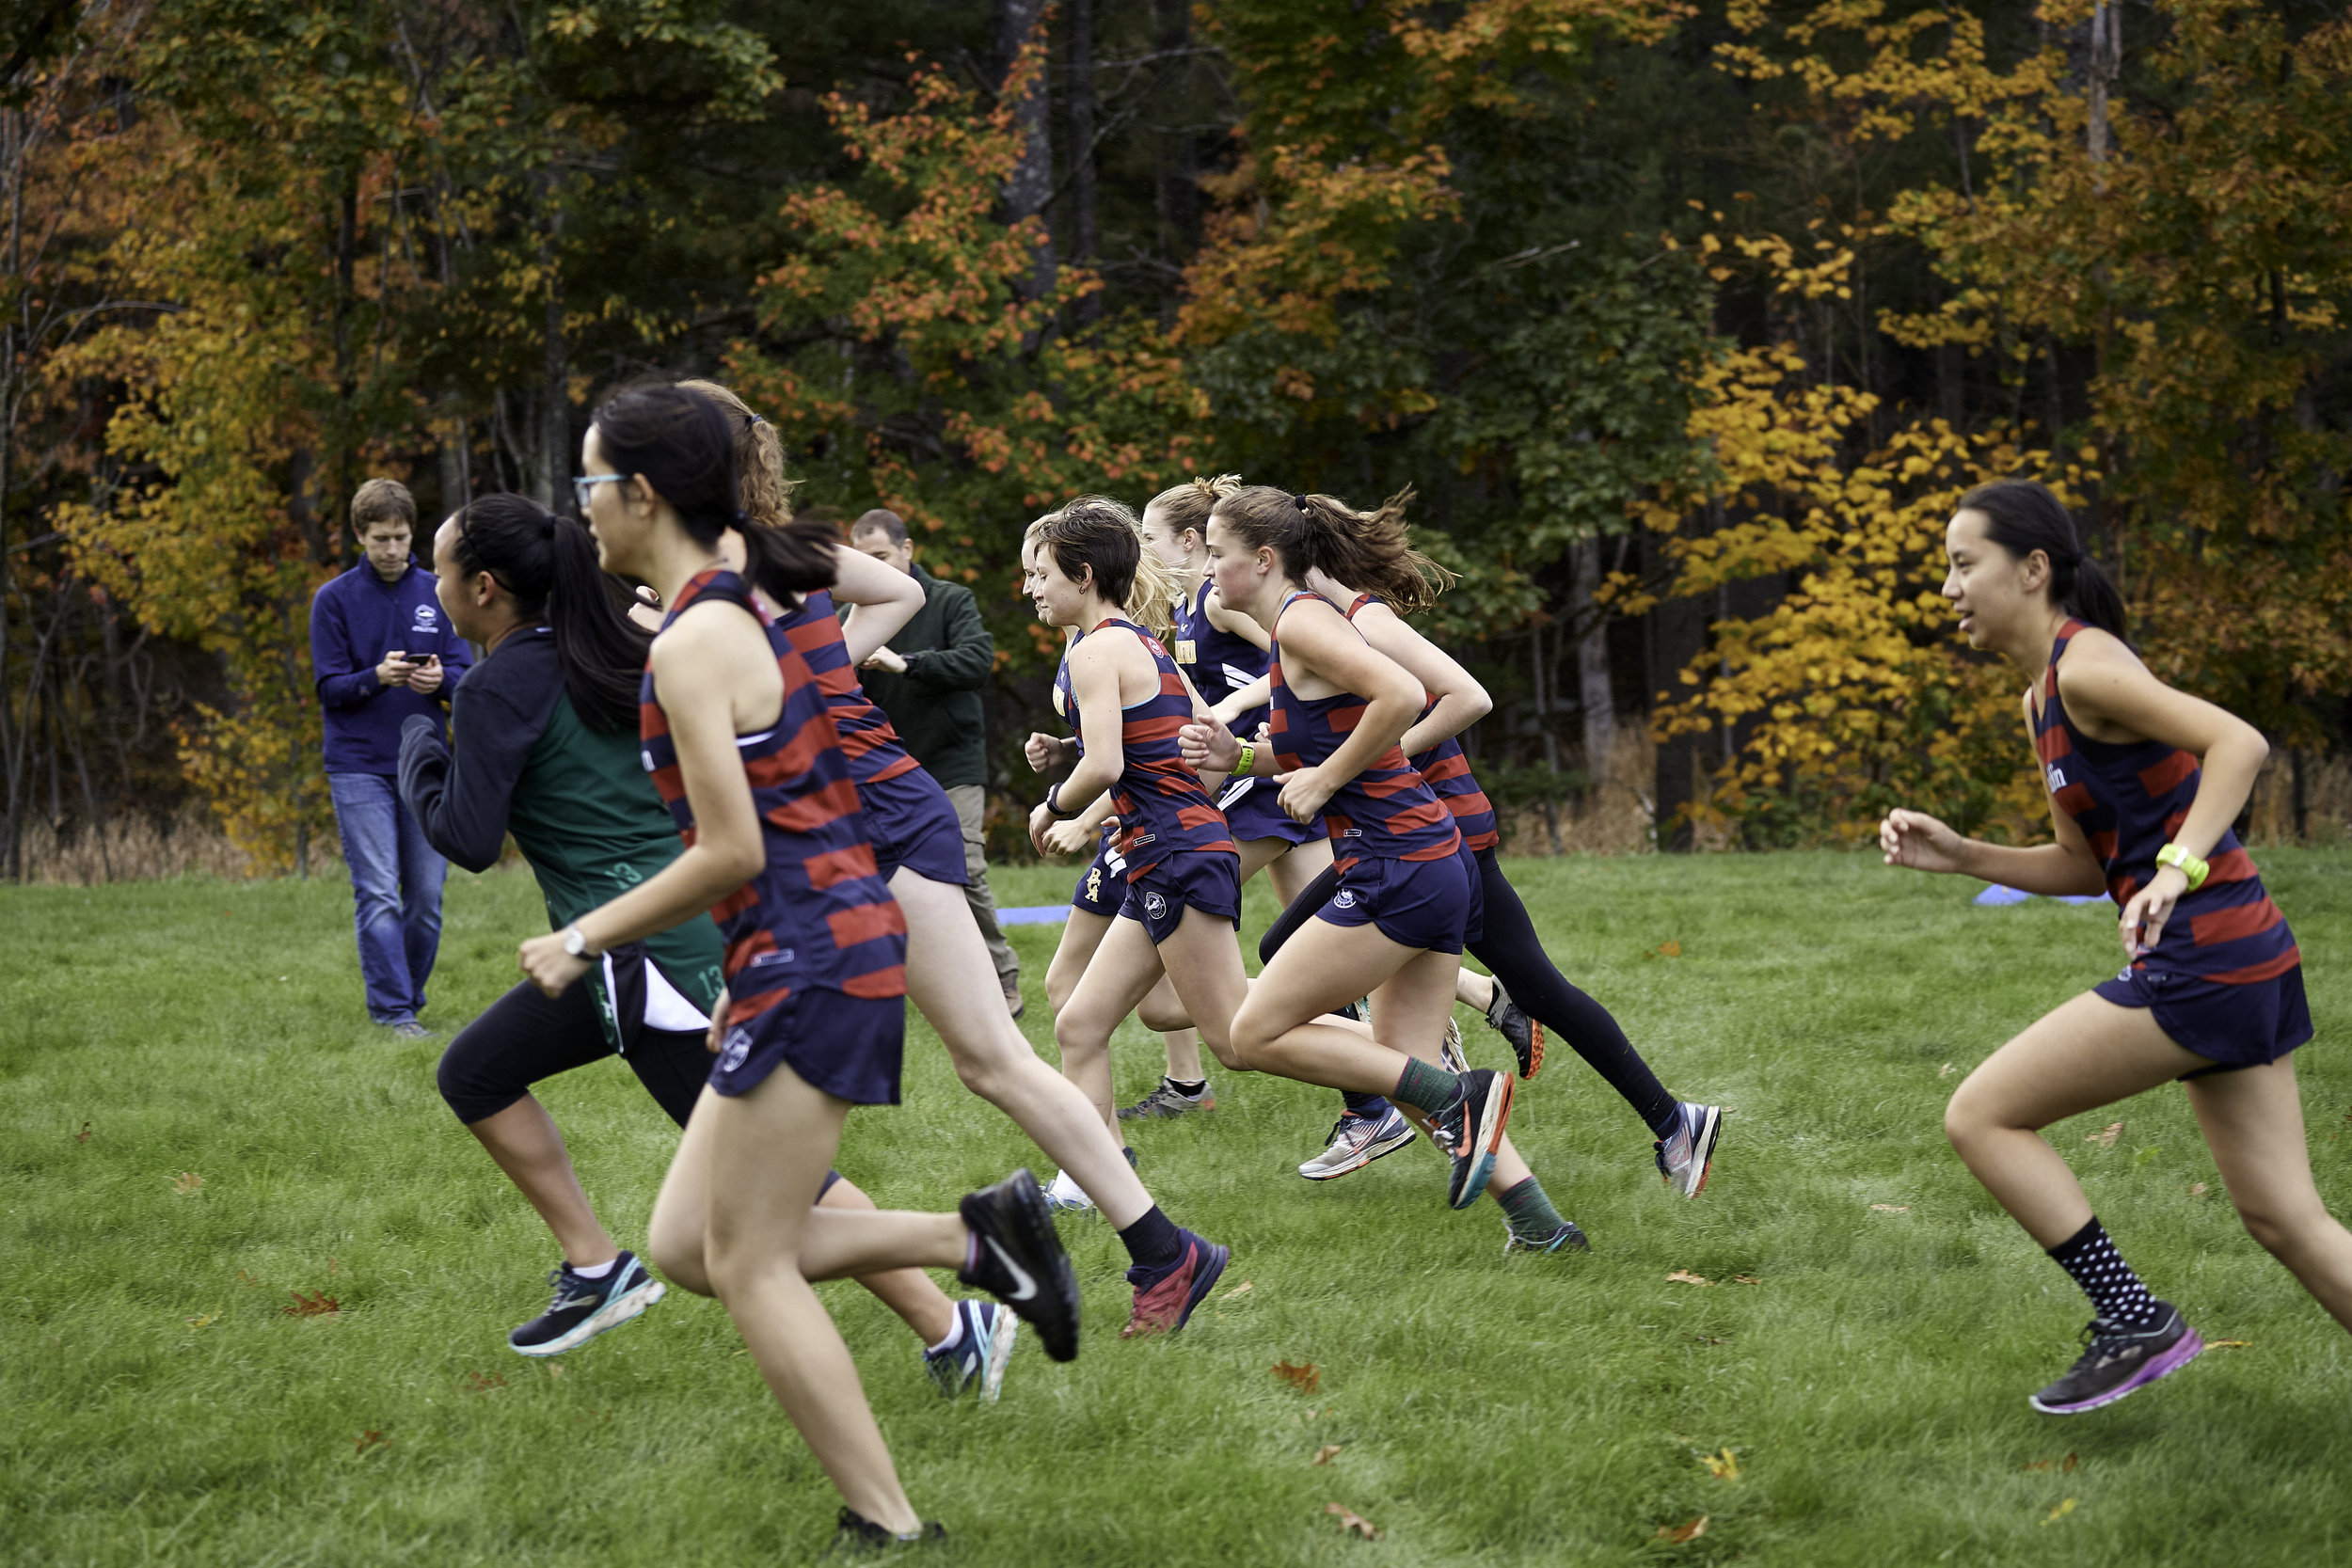 Dublion Invitational - October 12, 2018 - 136495.jpg